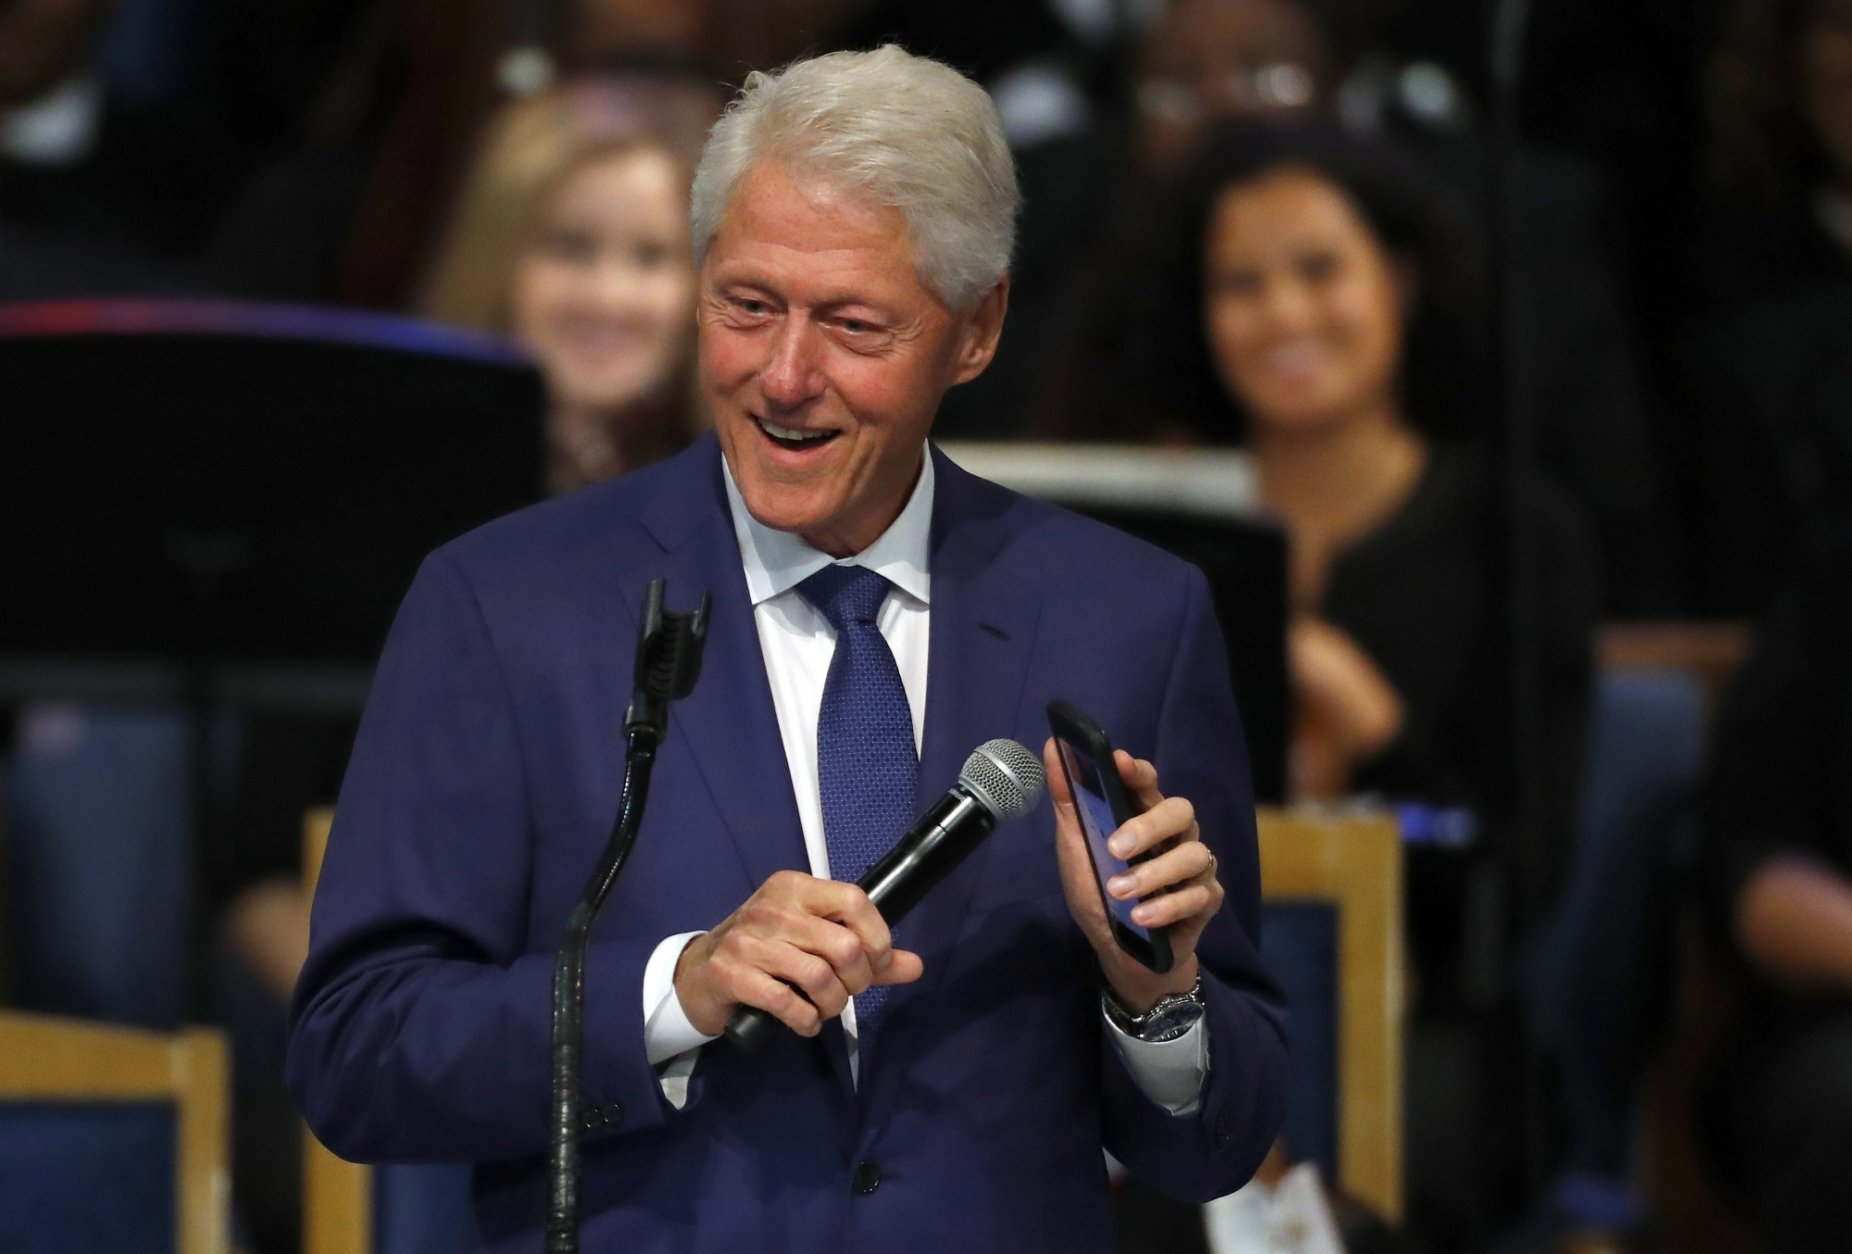 Former President Bill Clinton smiles as he plays a recording of Aretha Franklin on his phone during the funeral service for Franklin at Greater Grace Temple, Friday, Aug. 31, 2018, in Detroit. Franklin died Aug. 16, 2018 of pancreatic cancer at the age of 76. (AP Photo/Paul Sancya)